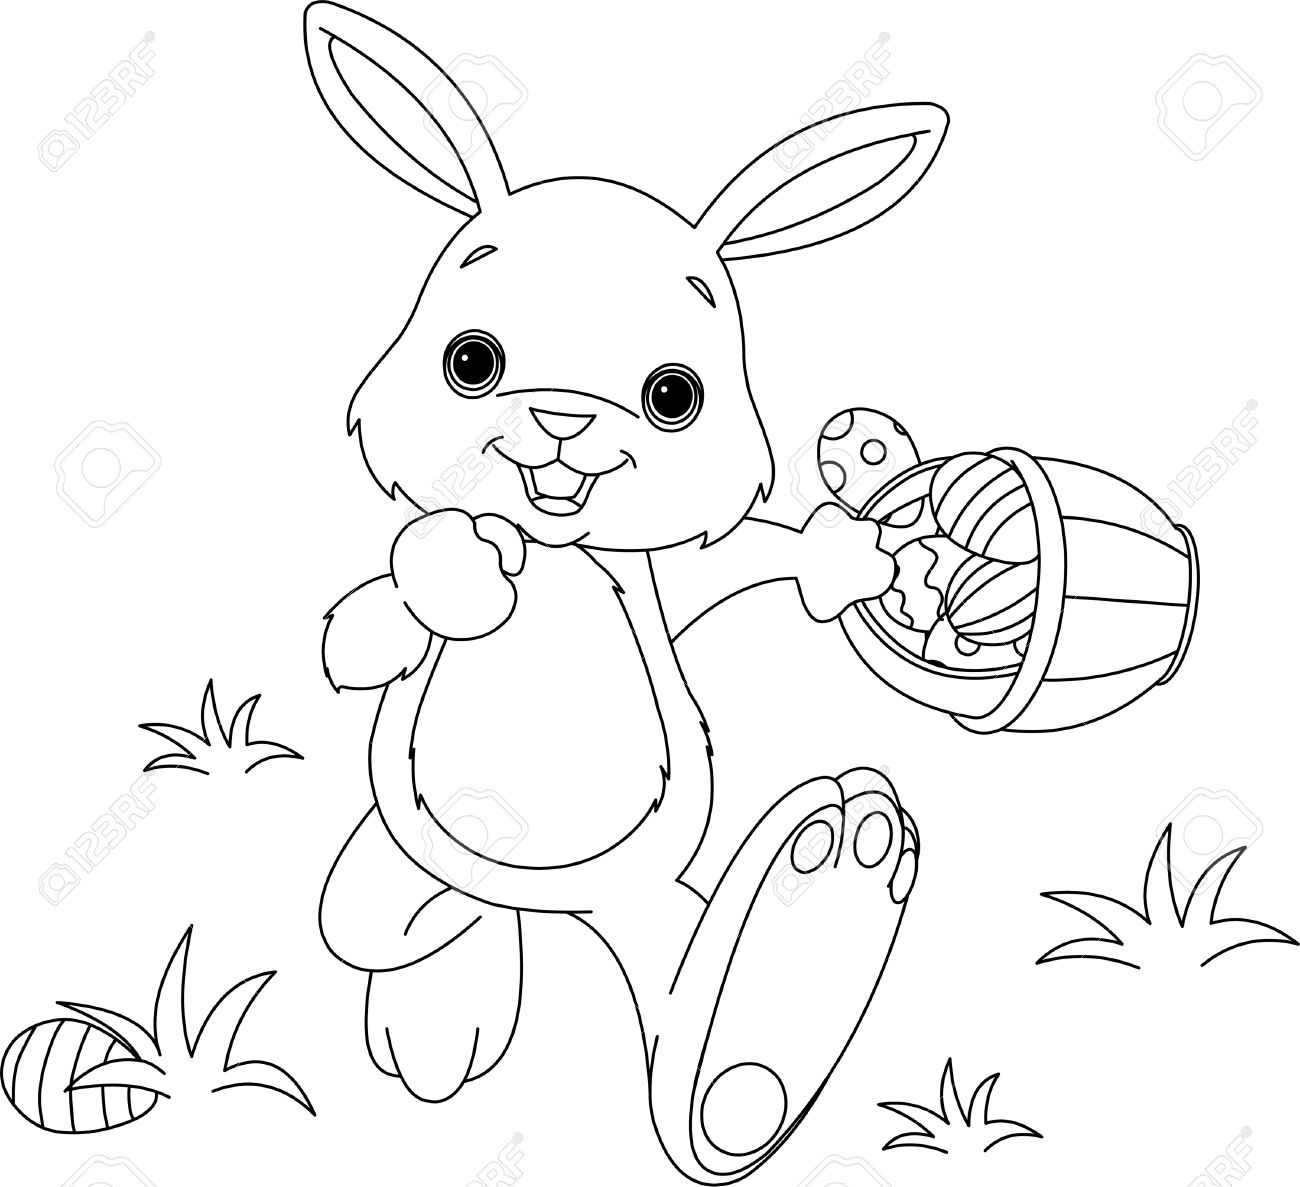 coloring page of easter bunny hiding eggs royalty free cliparts